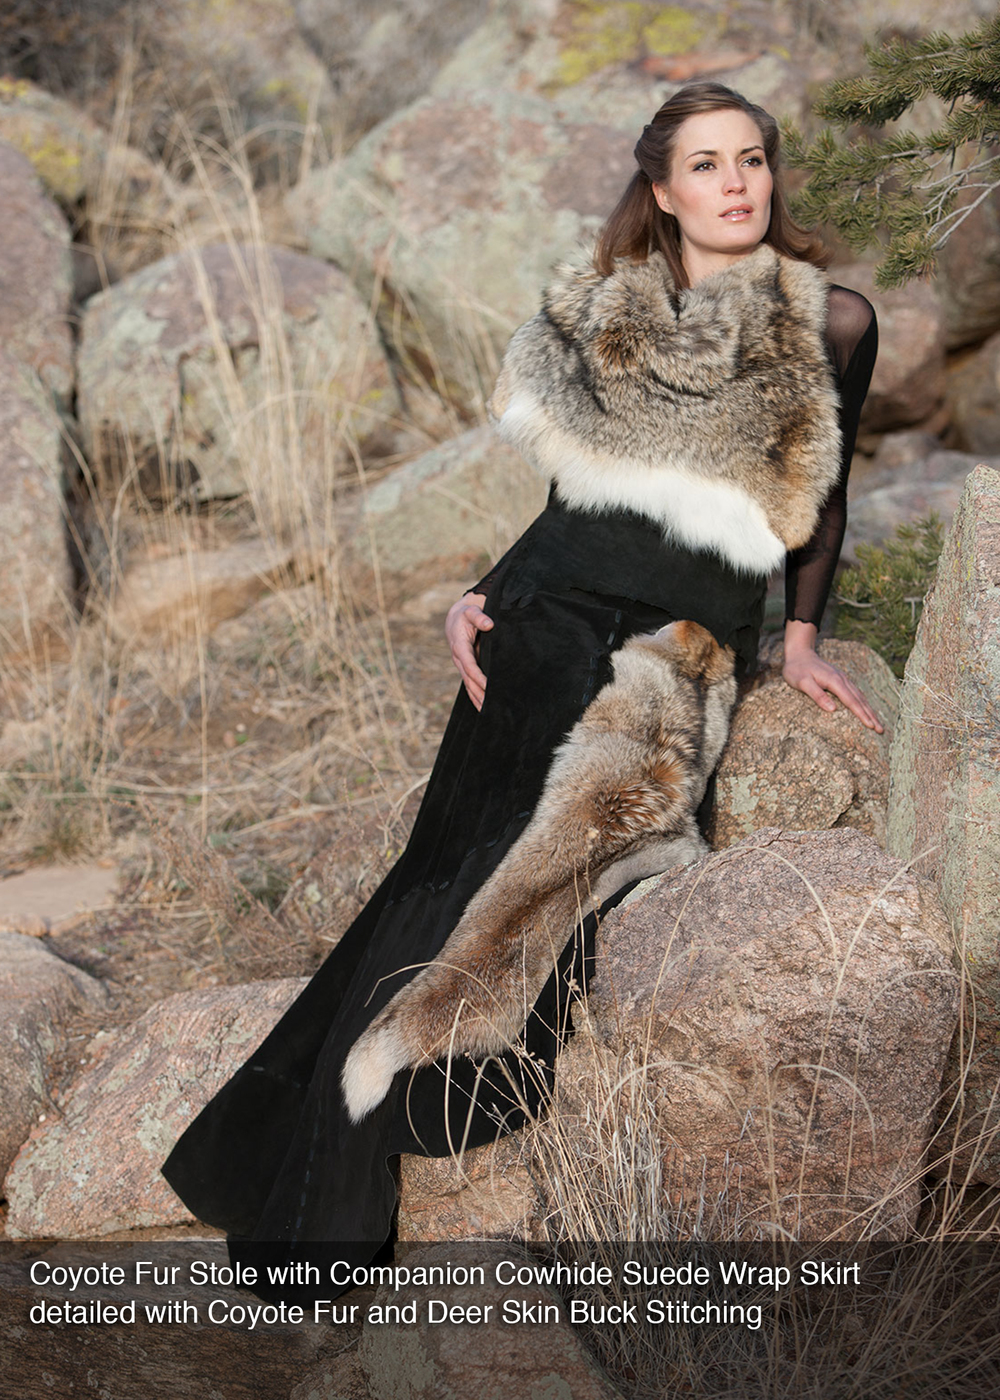 Coyote_Fur_Stole_3.jpg